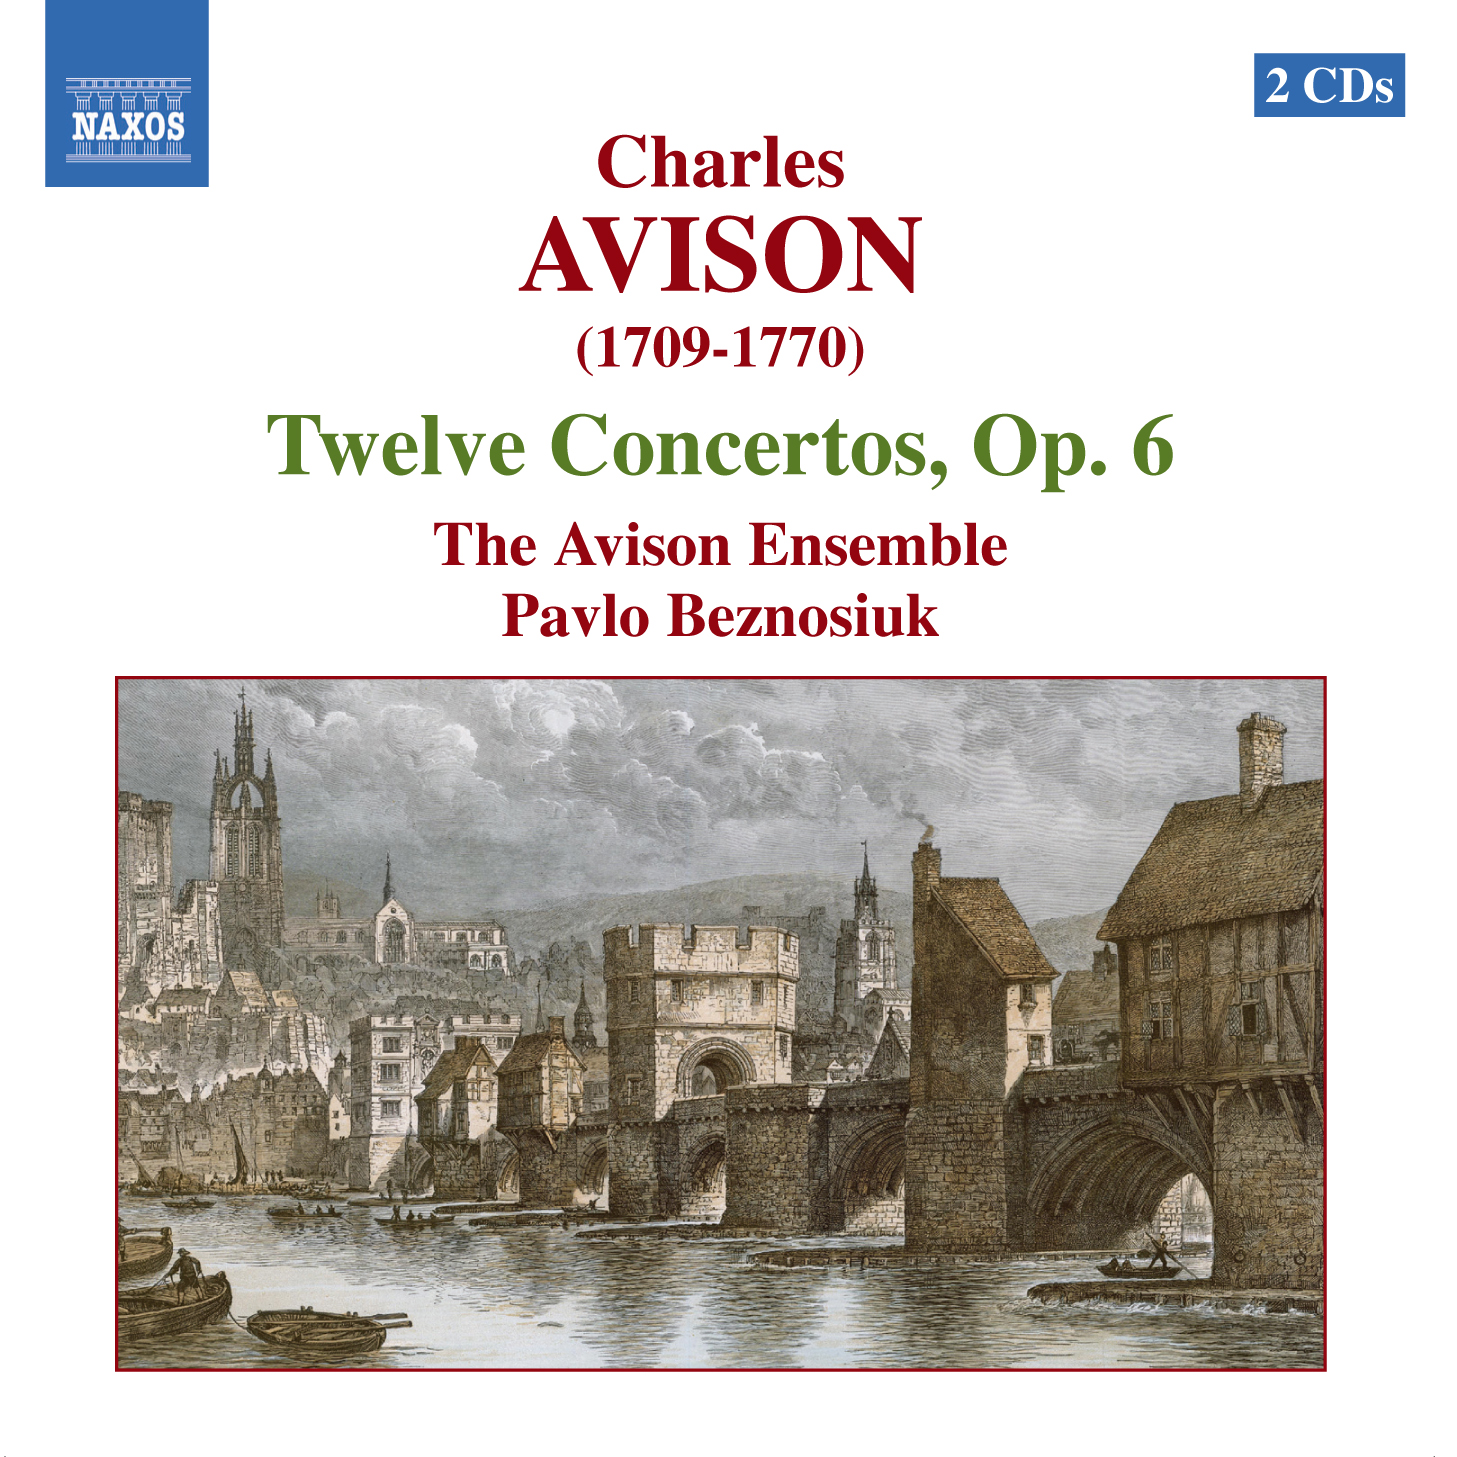 charles avison an essay on musical expression The avison ensemble origin:  it is named after charles avison  as the author of an essay on musical expression (1752), avison was a pioneer in the field of.